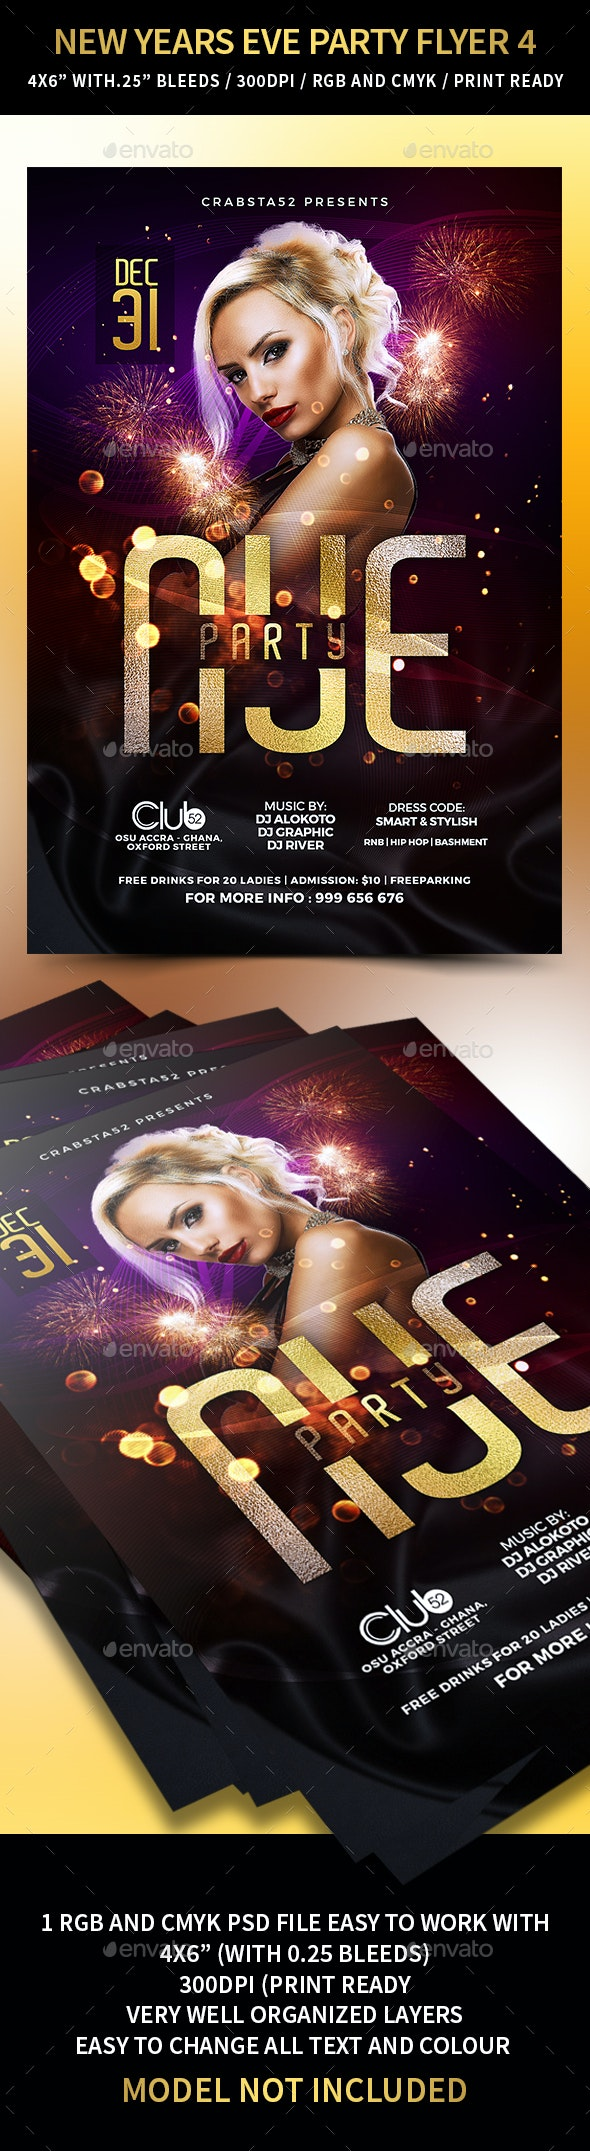 New Years Eve Party Flyer 4 - Flyers Print Templates